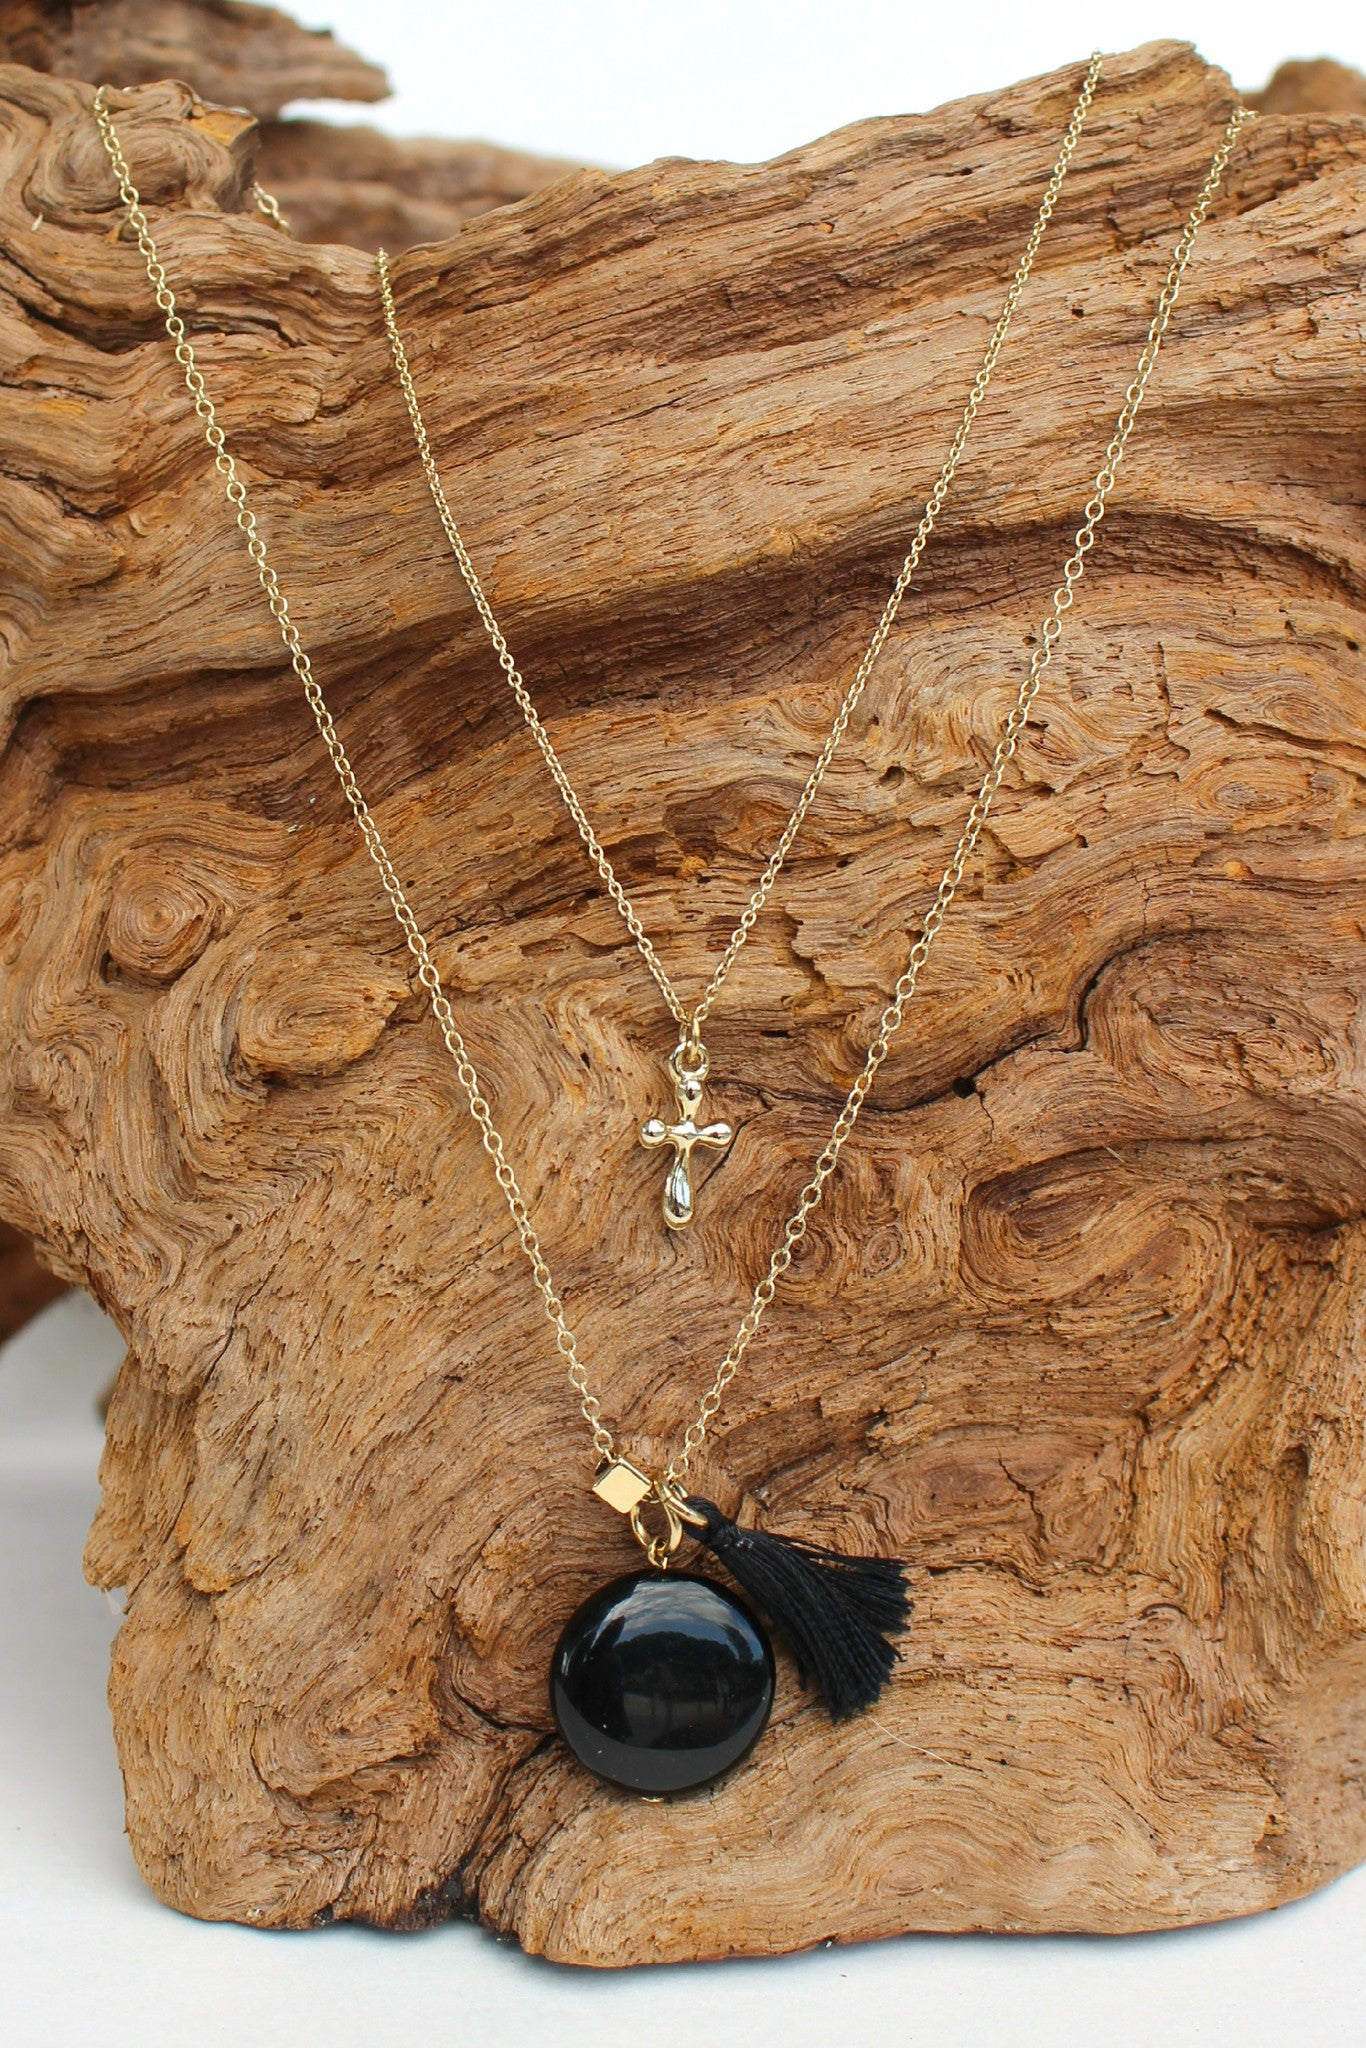 Triple Charm Necklace, Black